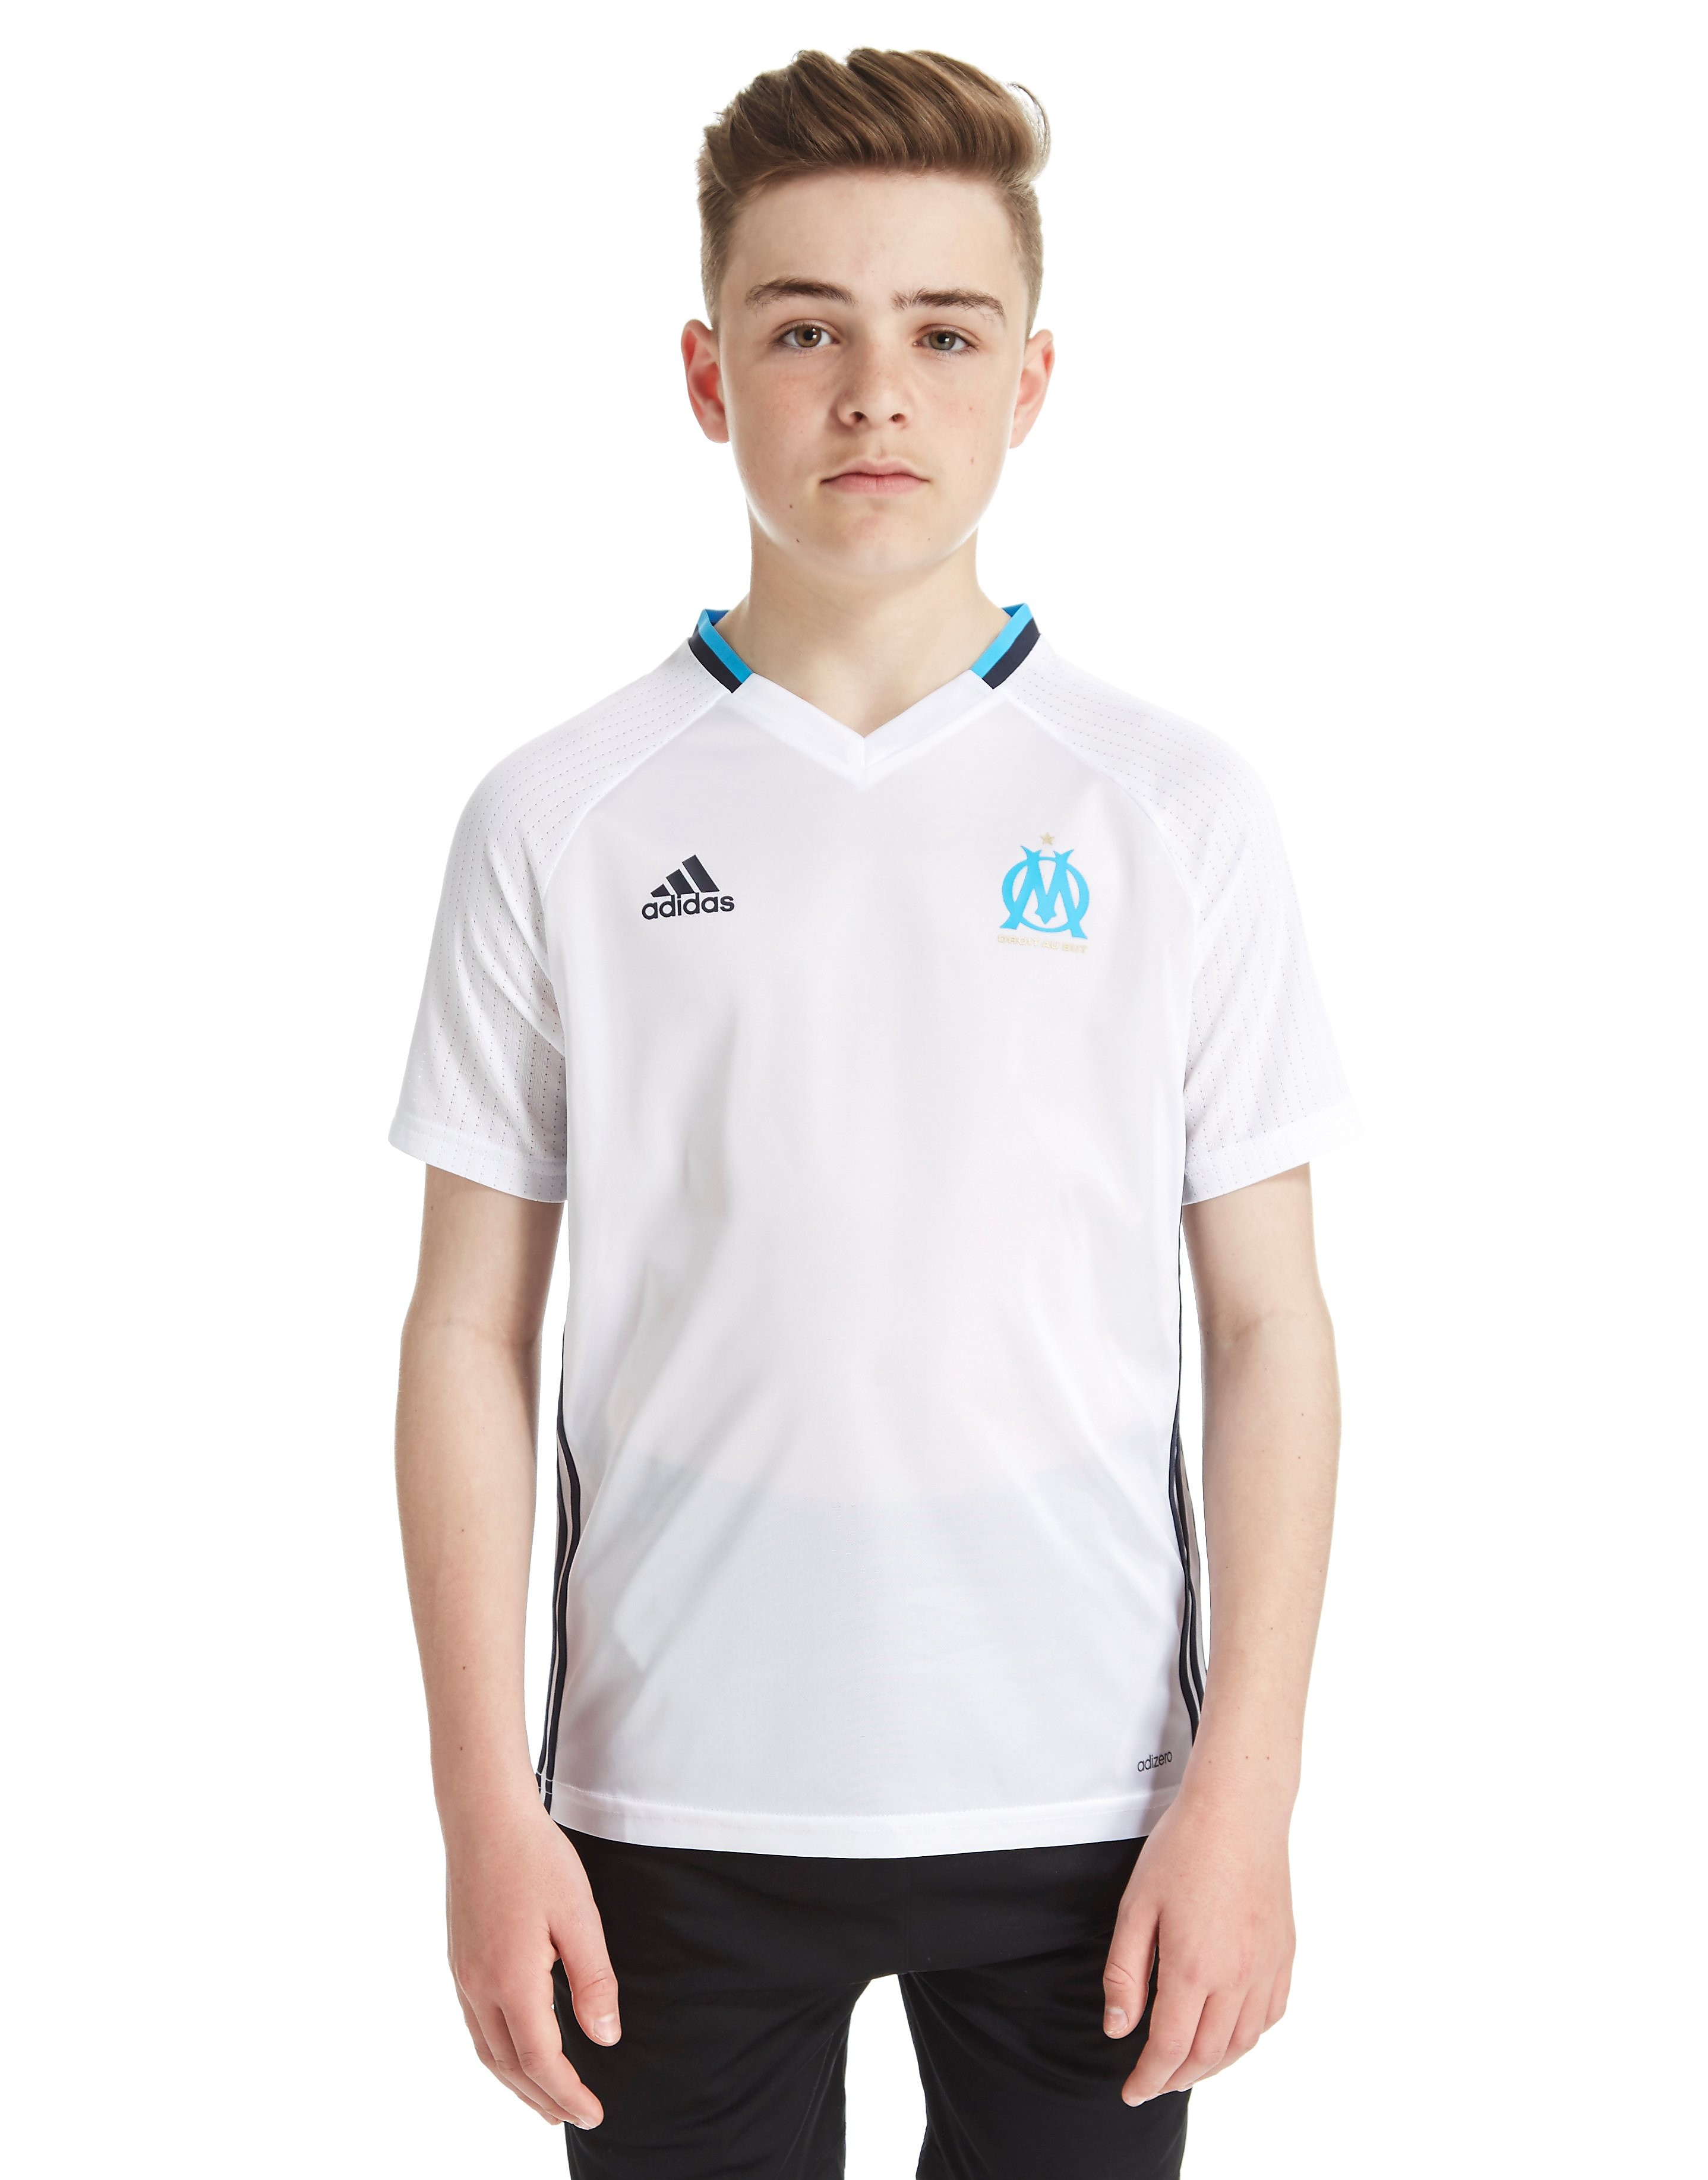 adidas Maillot officiel Olympique de Marseille 2016/17 junior